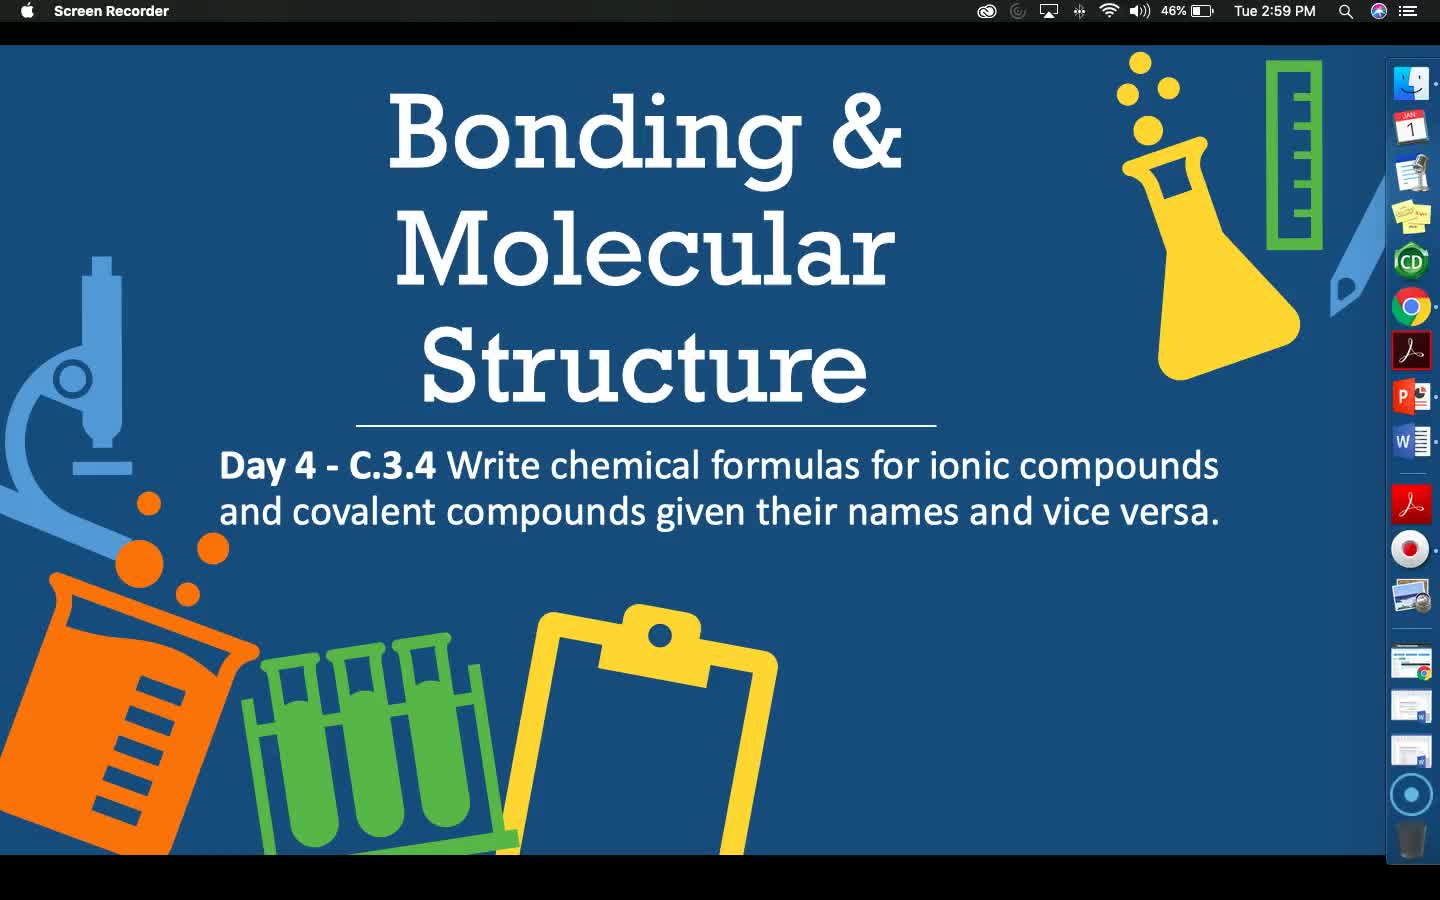 Bonding & Molecular Structure - Lesson 8